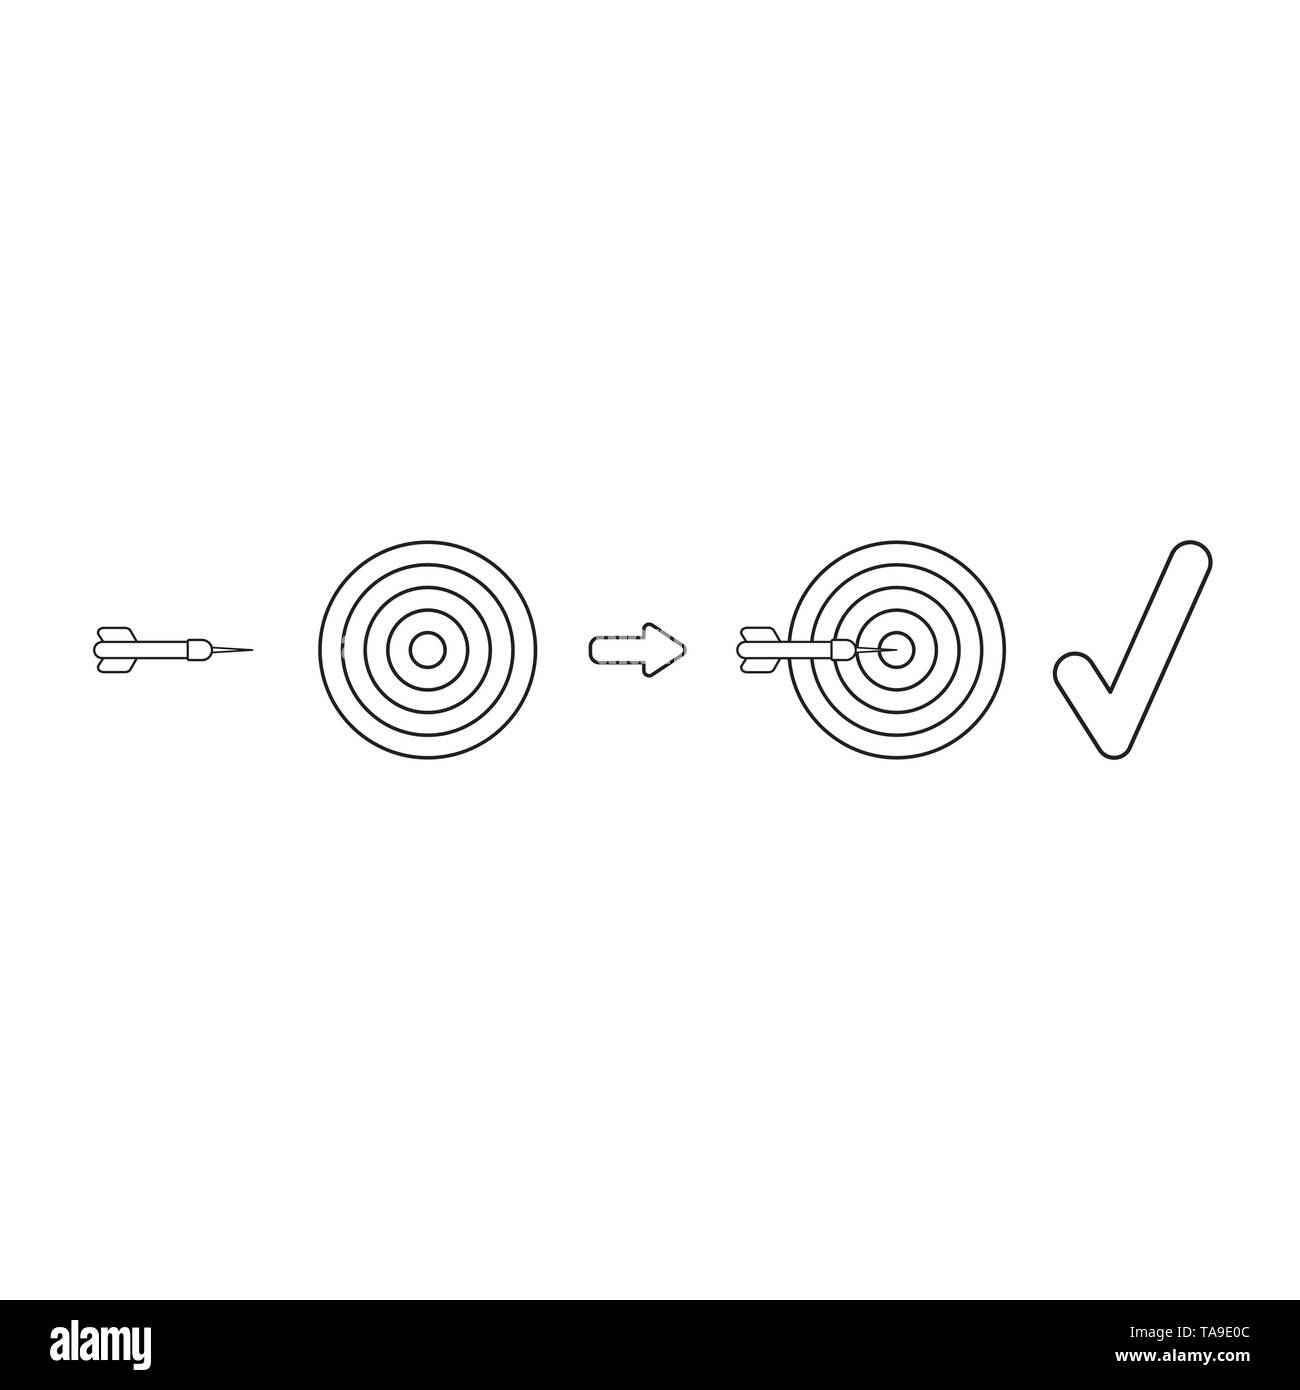 Vector icon concept of bulls eye and dart with check mark. Black outlines. - Stock Image